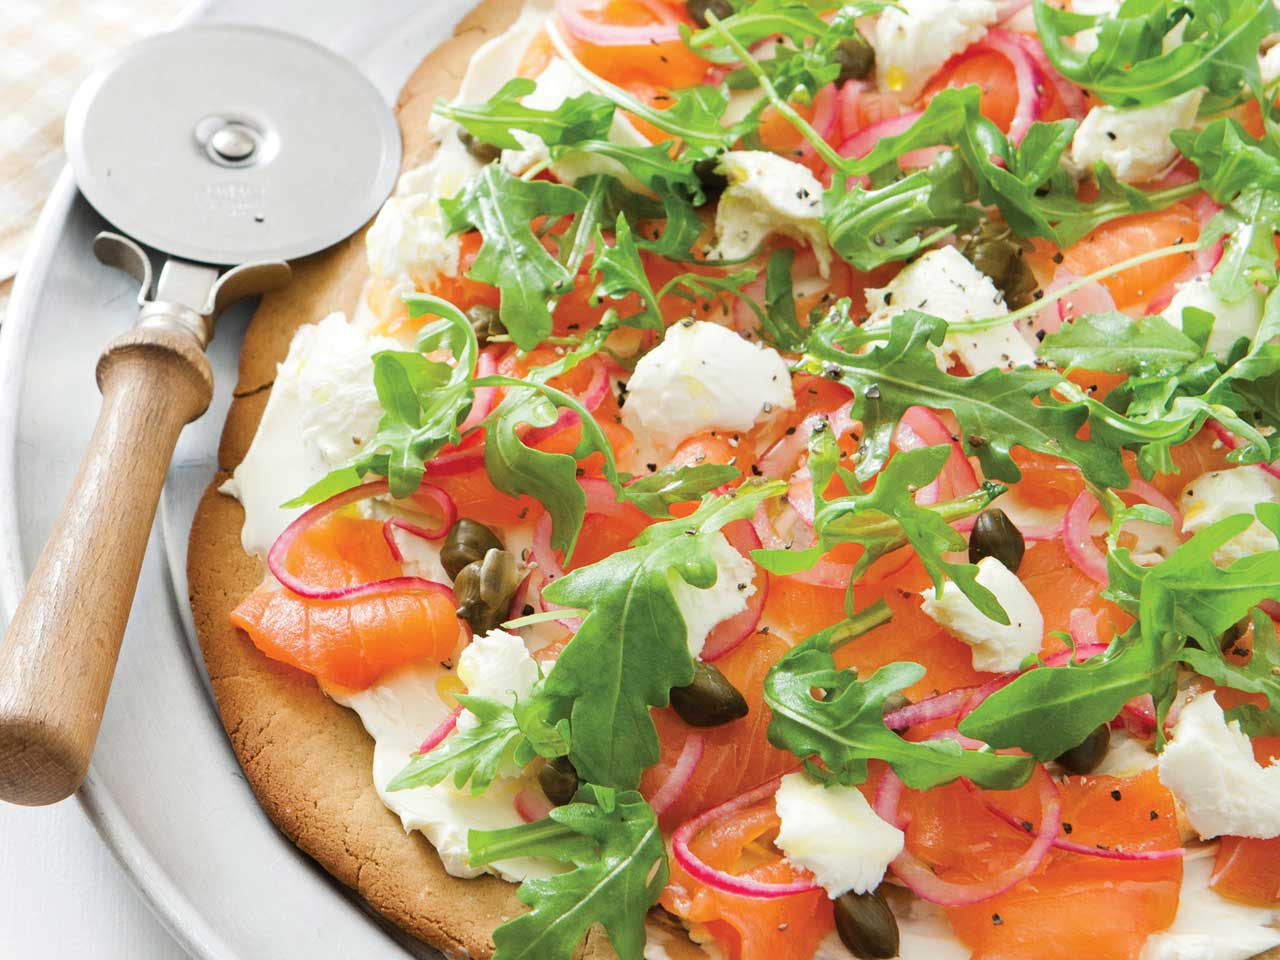 Gluten free quinoa pizza with smoked salmon